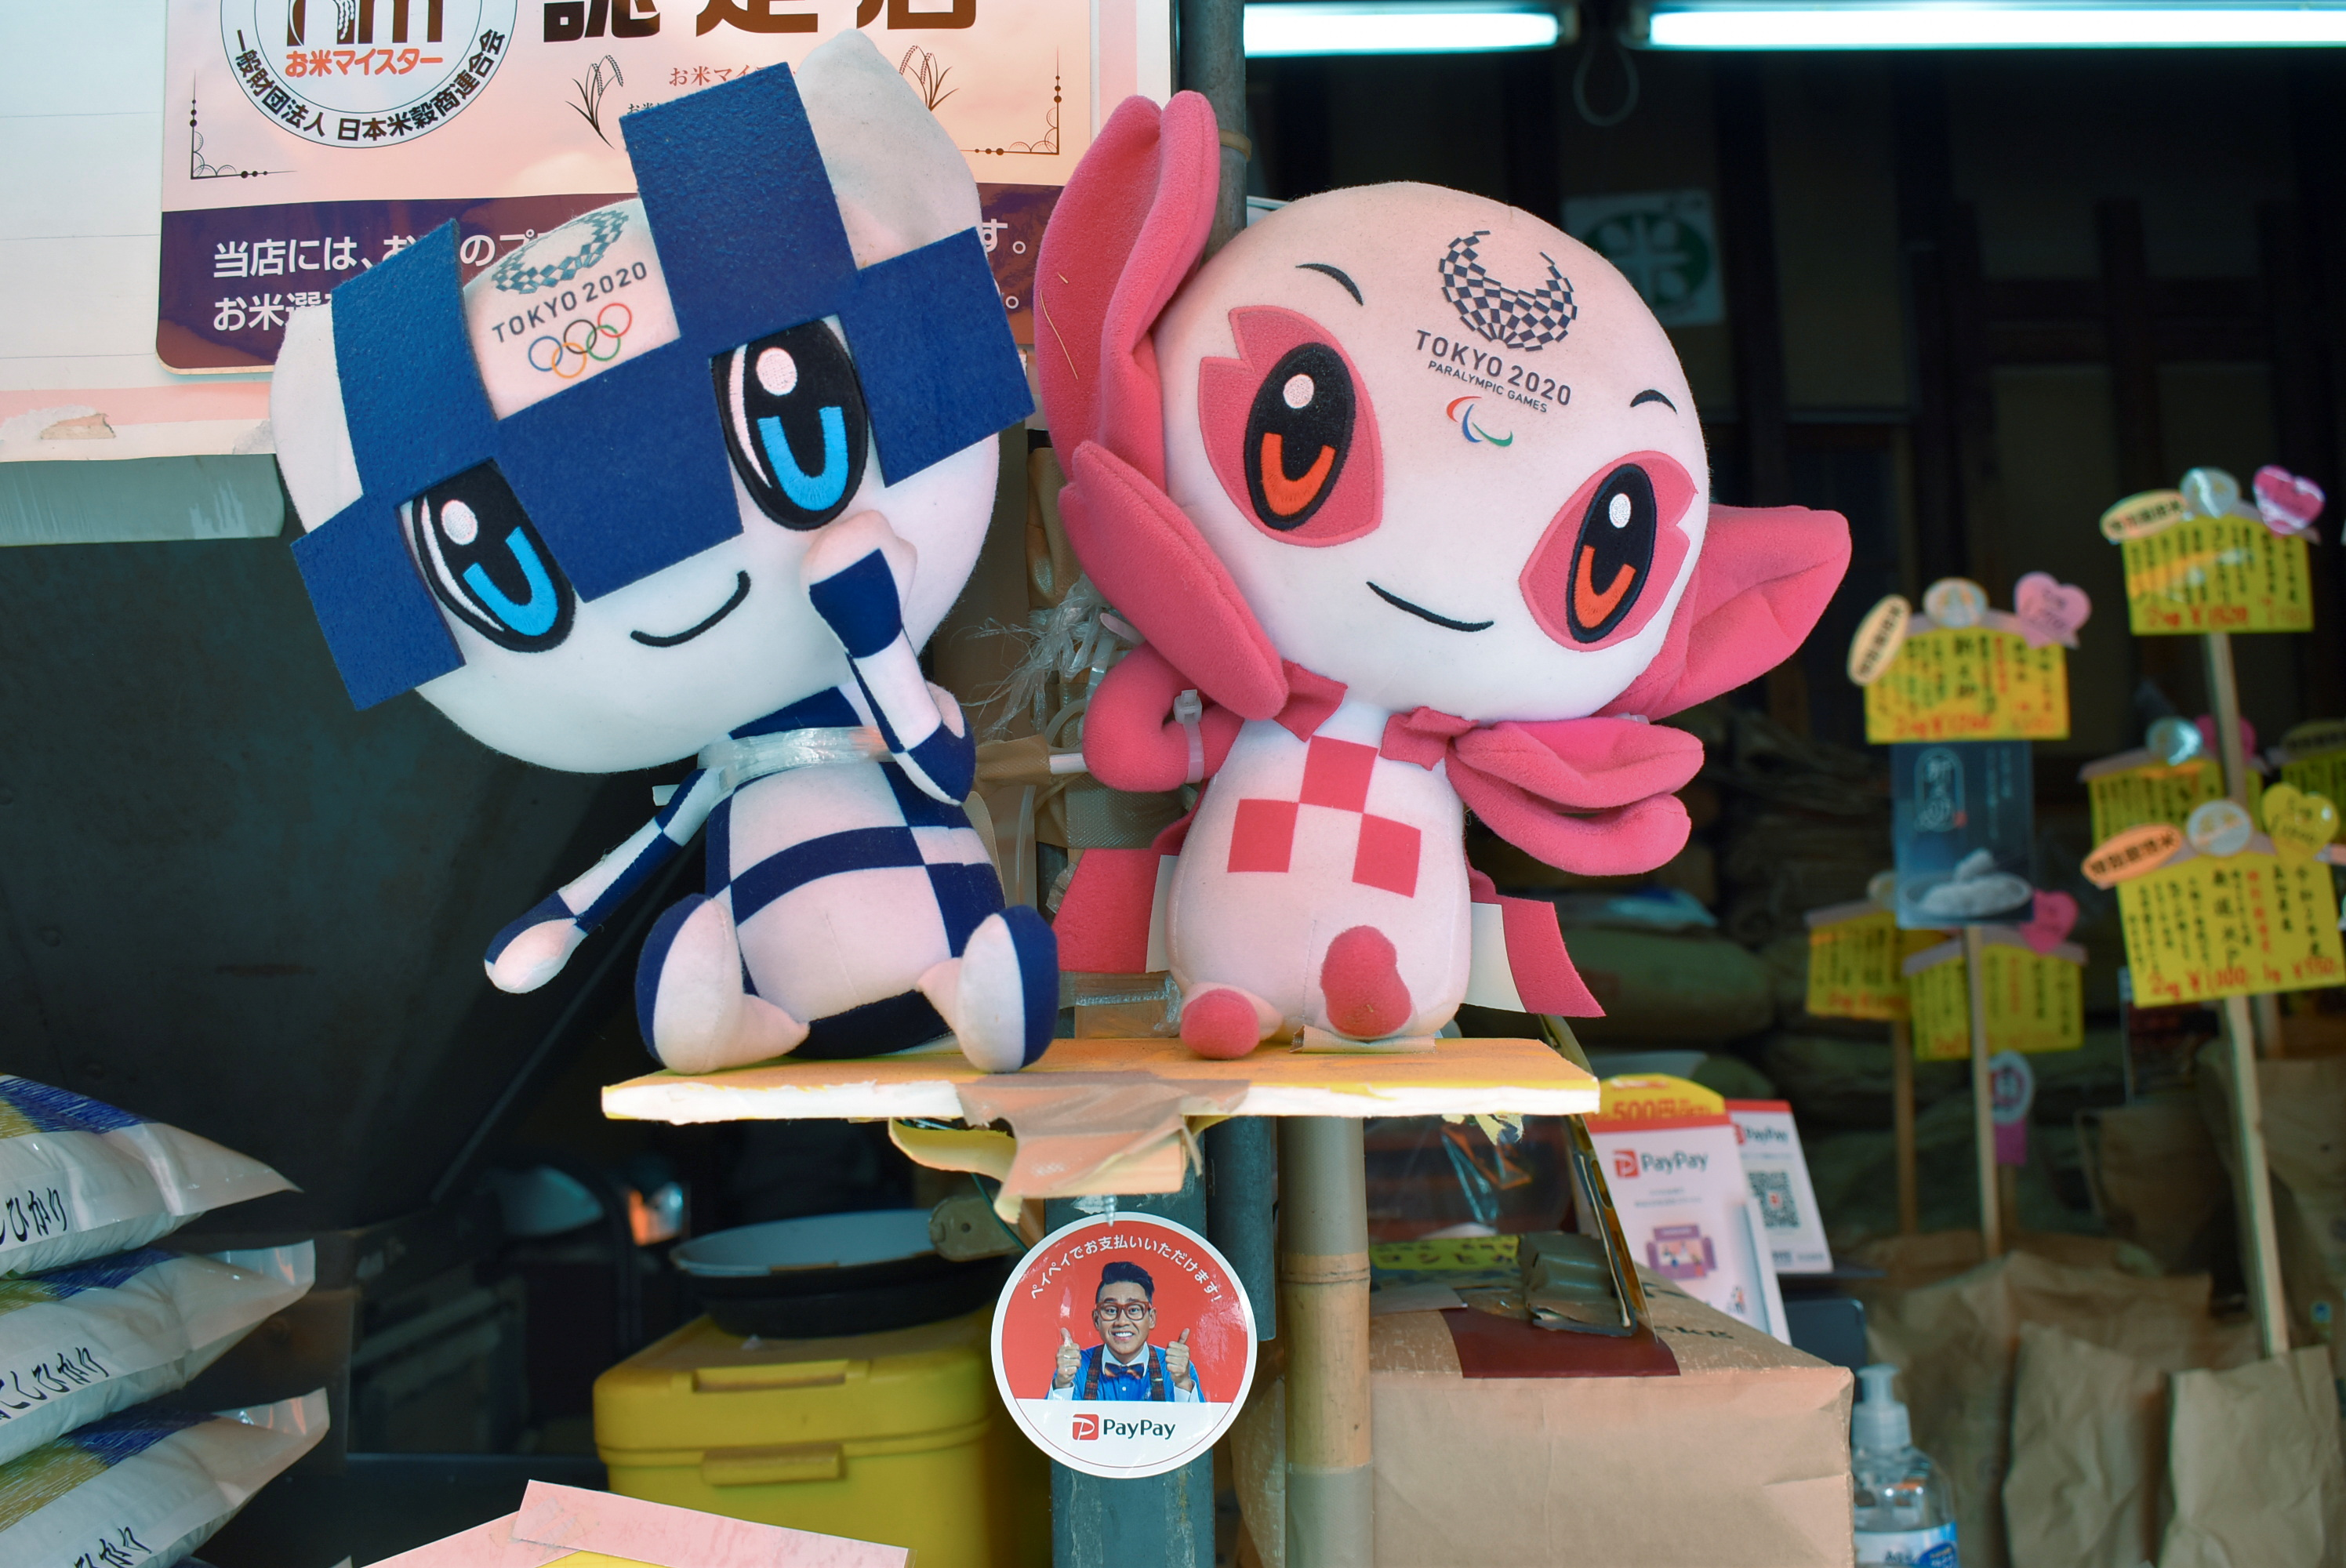 Tokyo 2020 mascots and a PayPay app sticker are displayed at the rice dealer's shop Mikawaya, in Tokyo, Japan June 7, 2021. Picture taken June 7, 2021. REUTERS/Sam Nussey